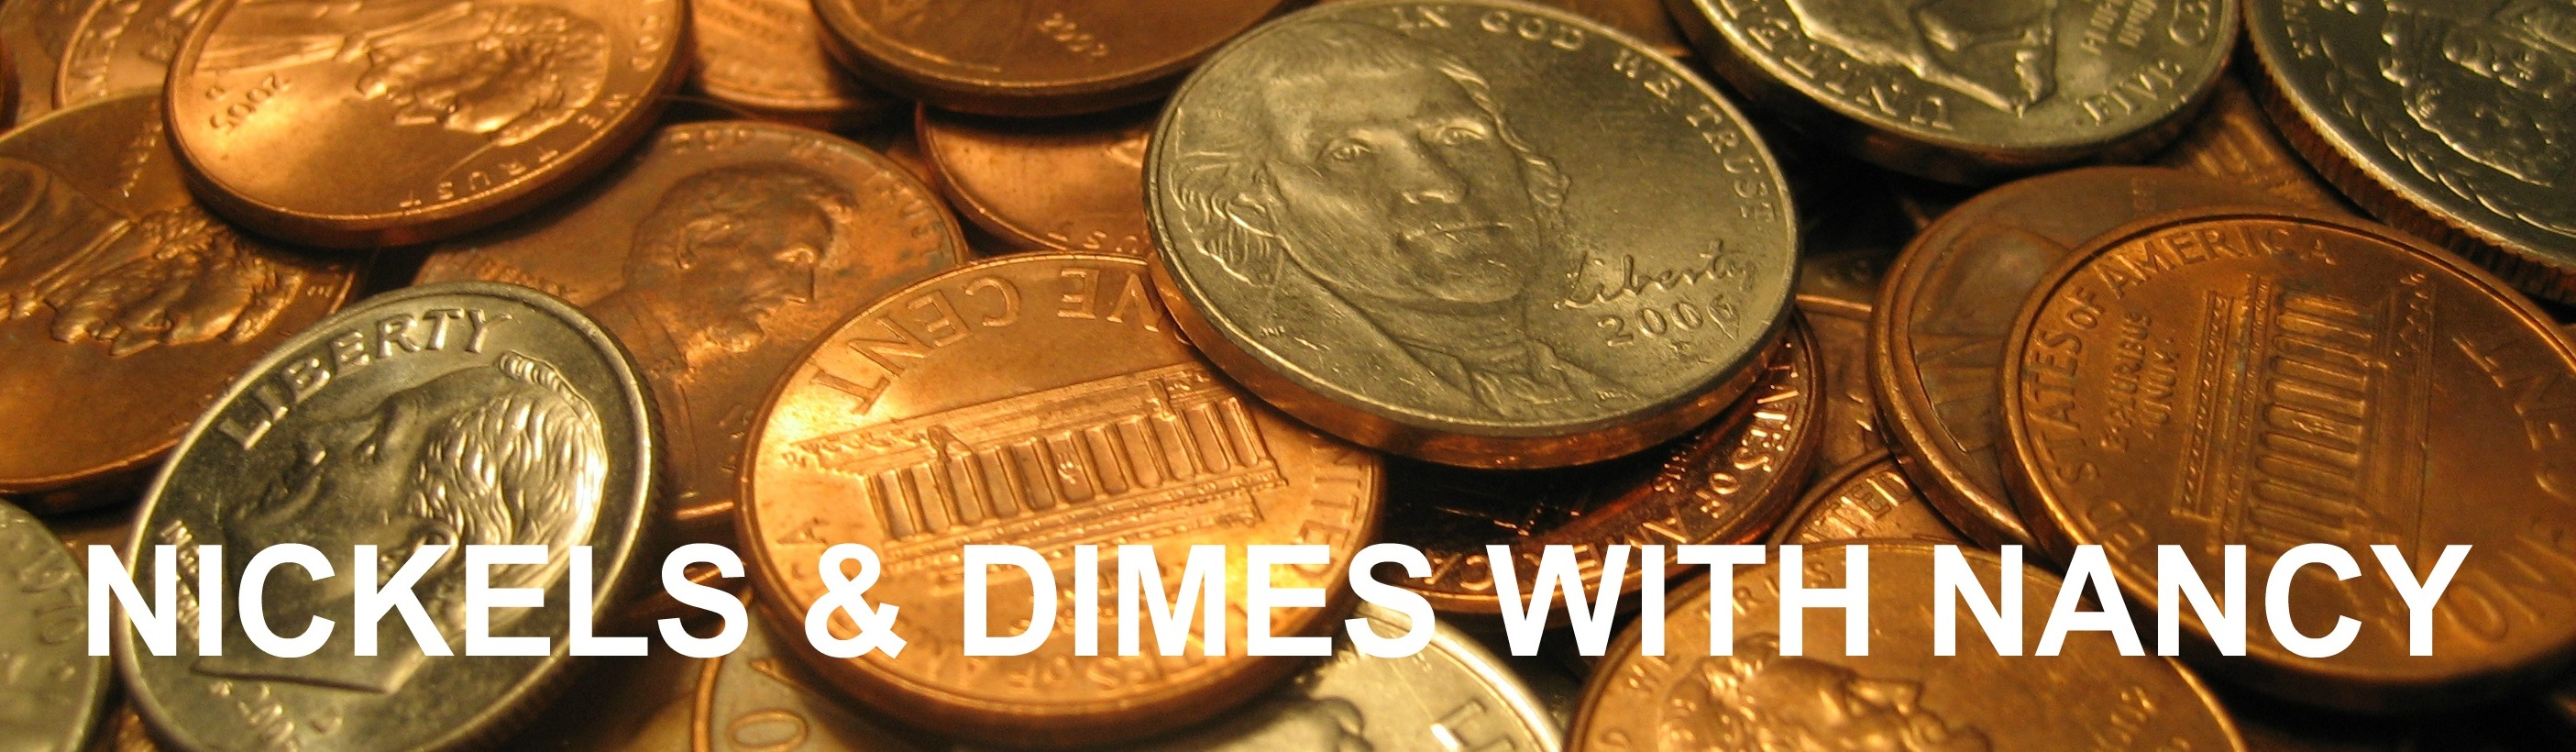 Nickels and Dimes with Nancy